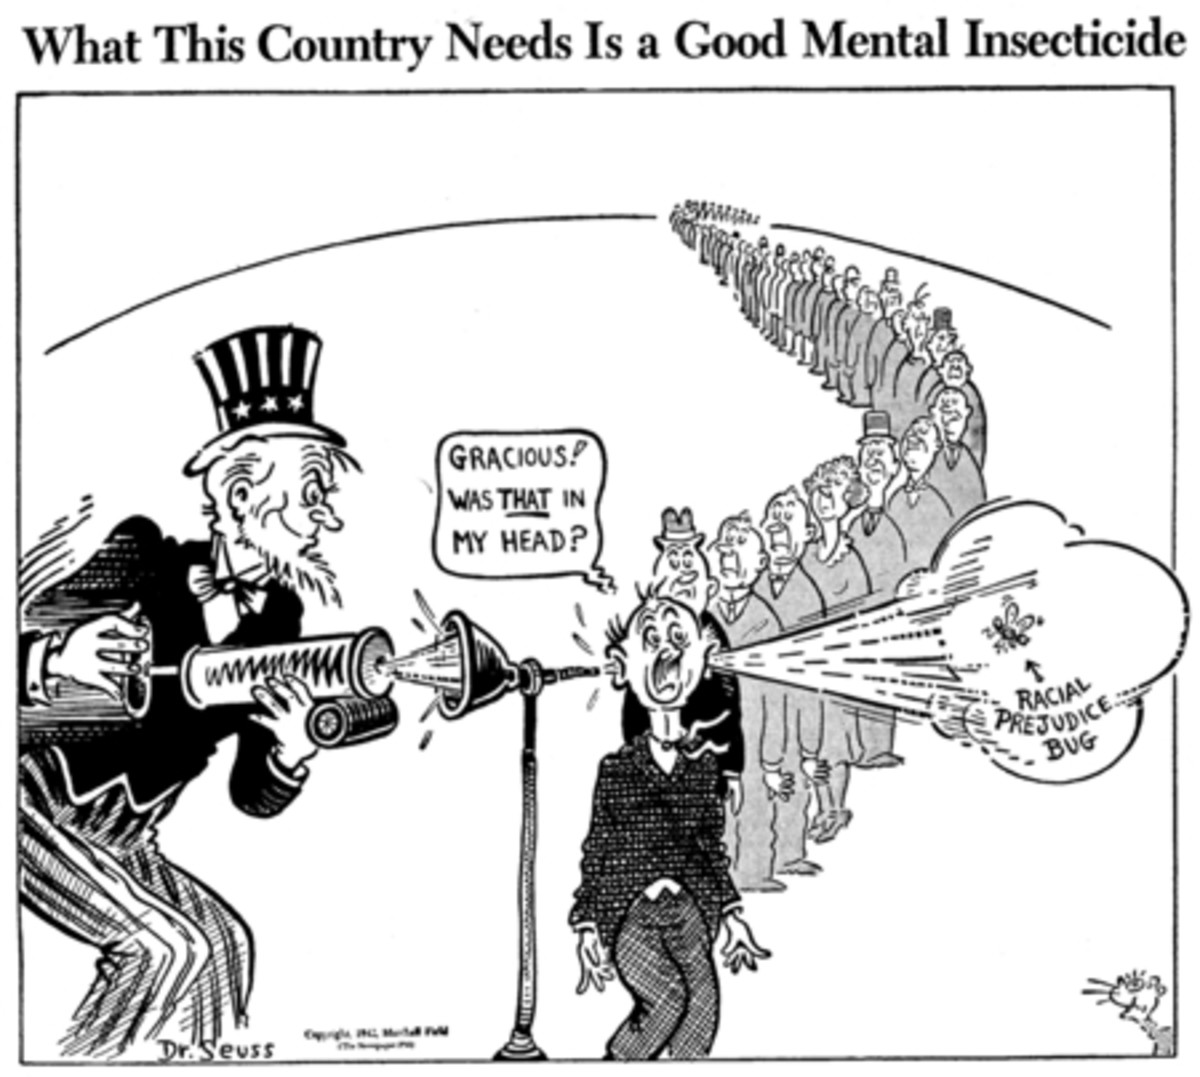 What this country needs is a good mental insecticide, published by PM Magazine on June 11, 1942, Dr. Seuss Collection, MSS 230. Special Collections & Archives, UC San Diego Library